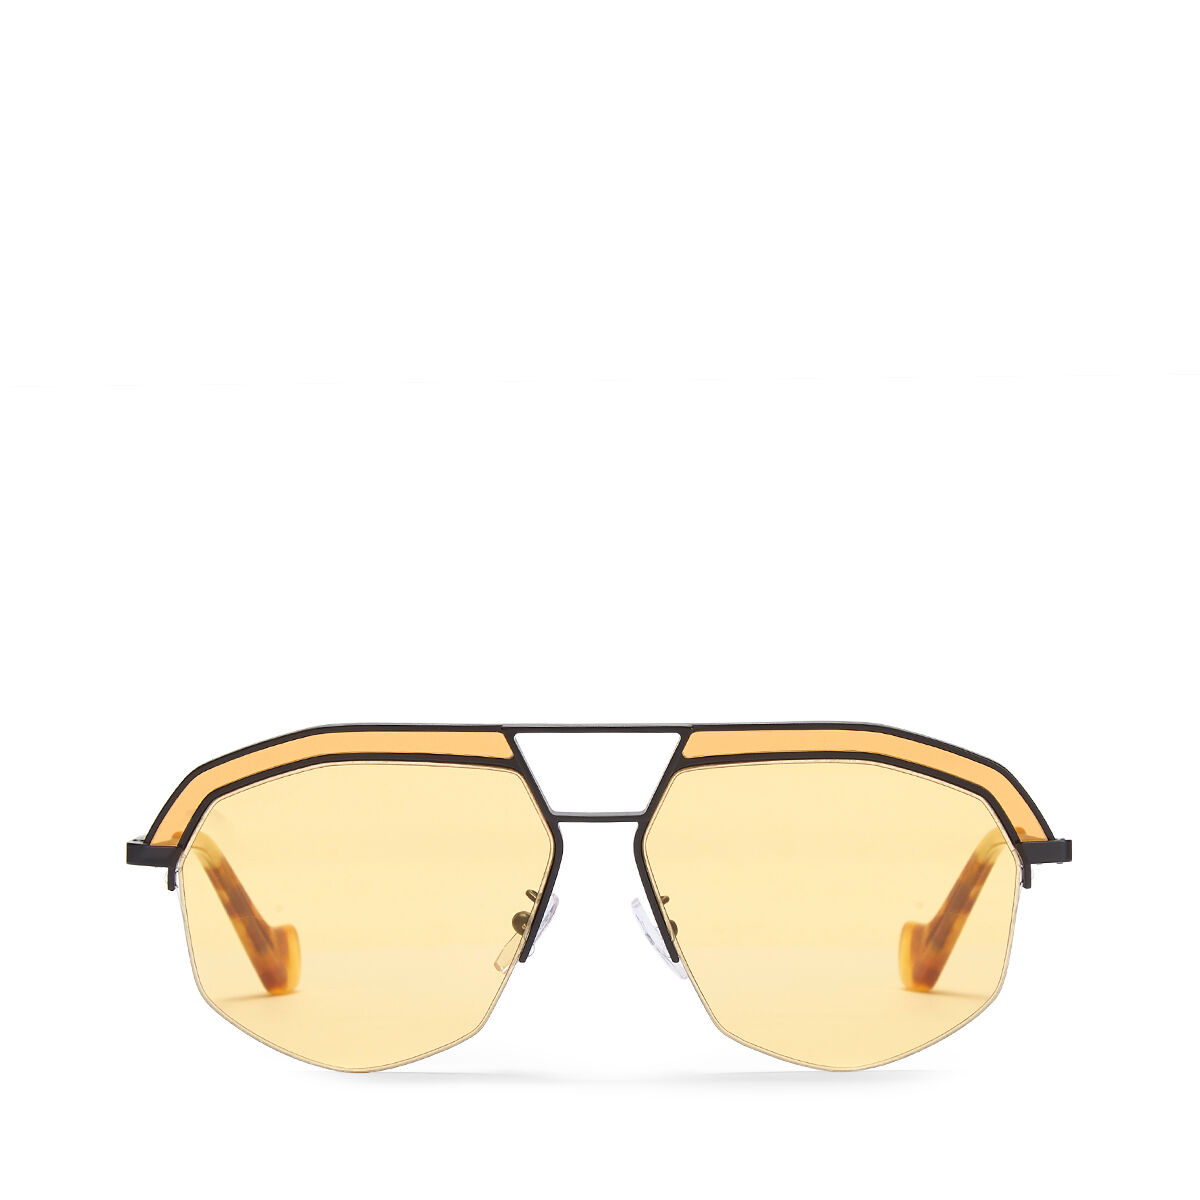 LOEWE Geometrical Sunglasses Matte Black/Yellow all